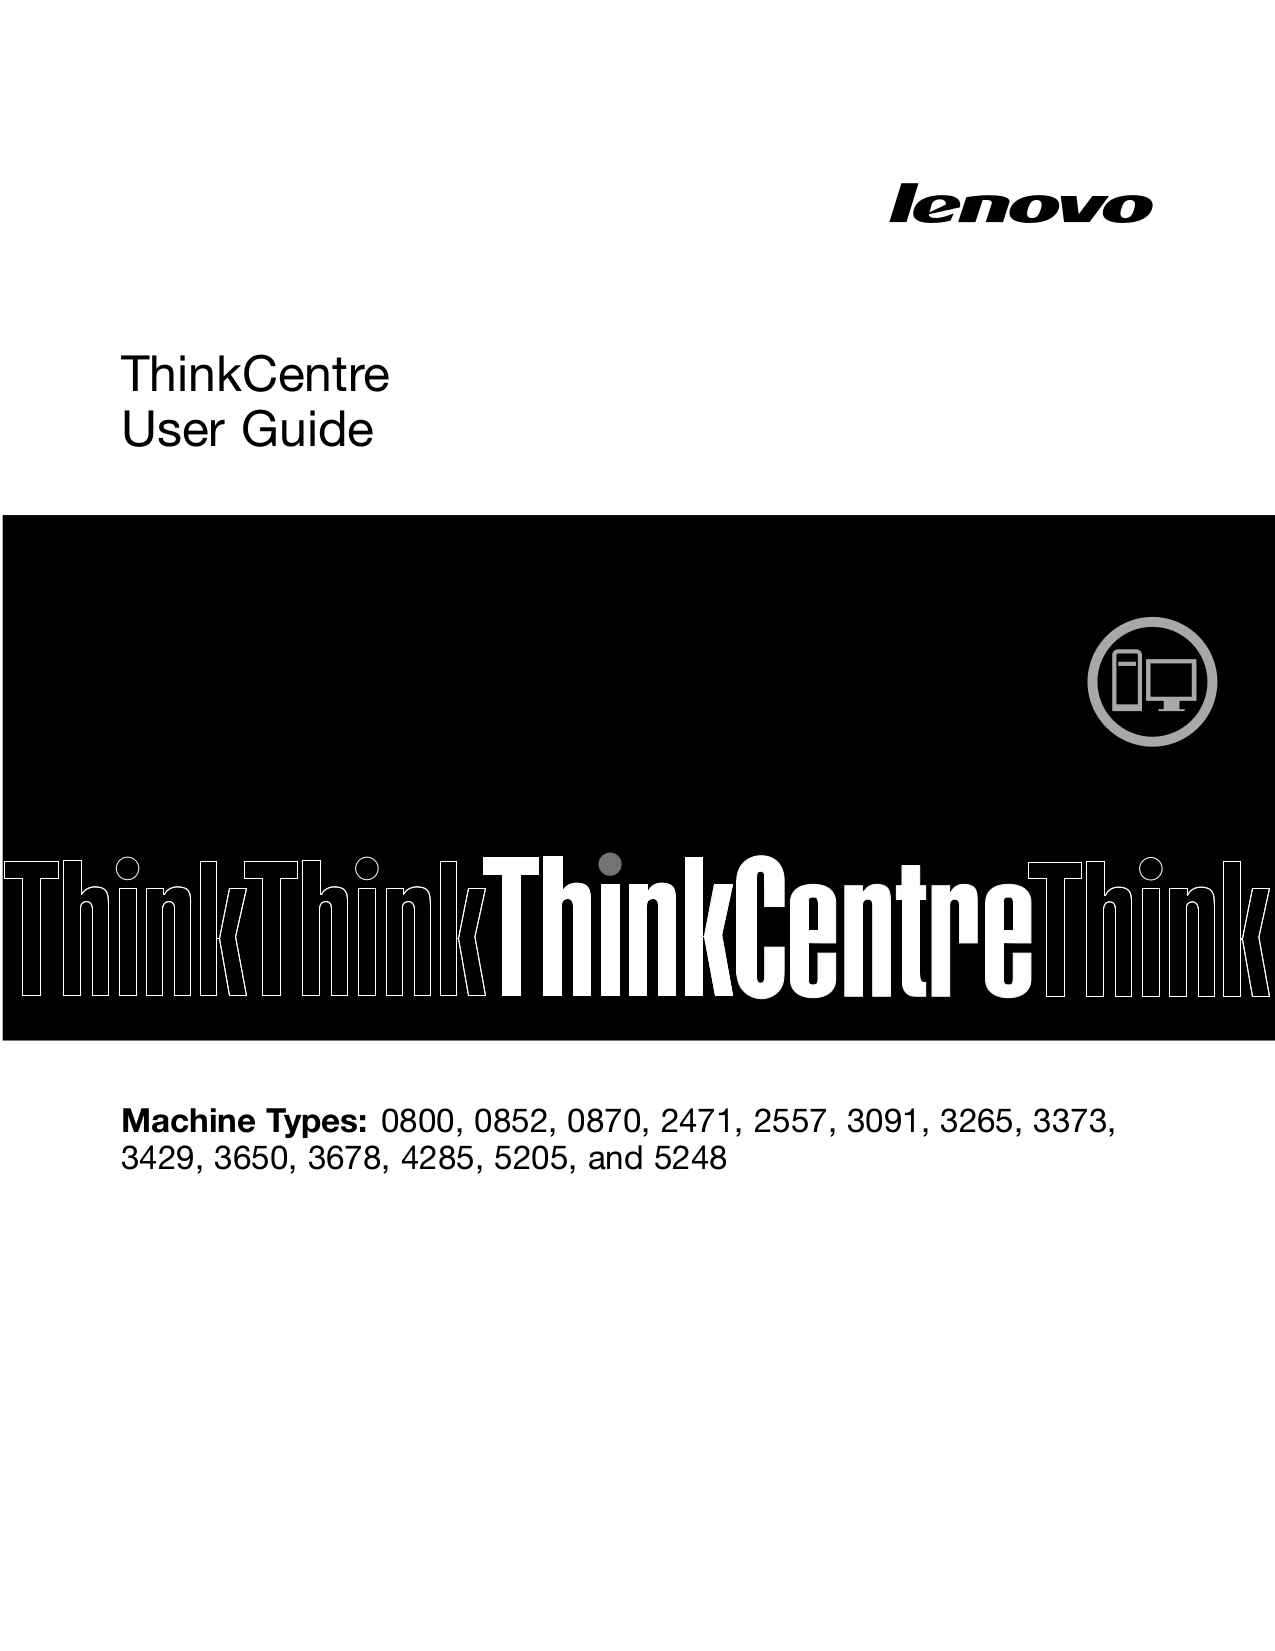 pdf for Lenovo Desktop ThinkCentre M90z 3650 manual